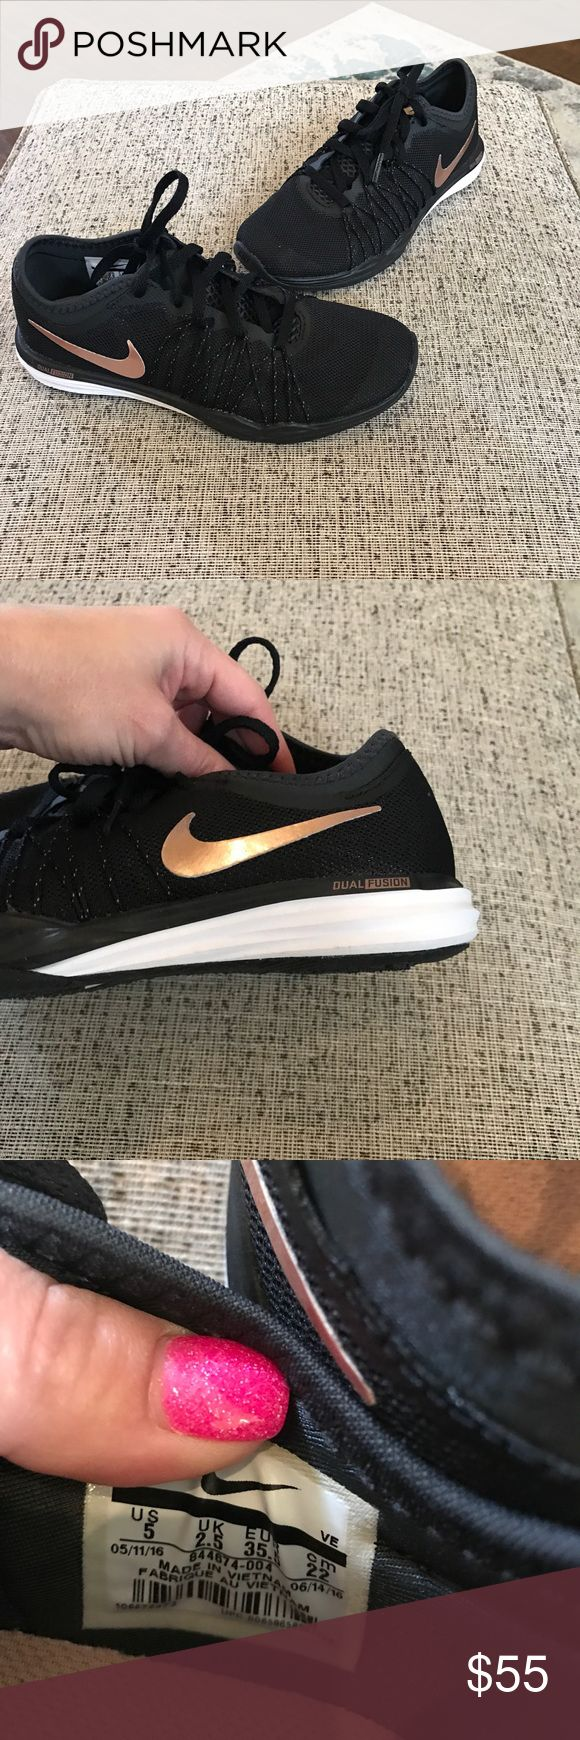 Nike dual fusion Black and rose gold. Worn once. Size 5 Nike Shoes Athletic Shoes